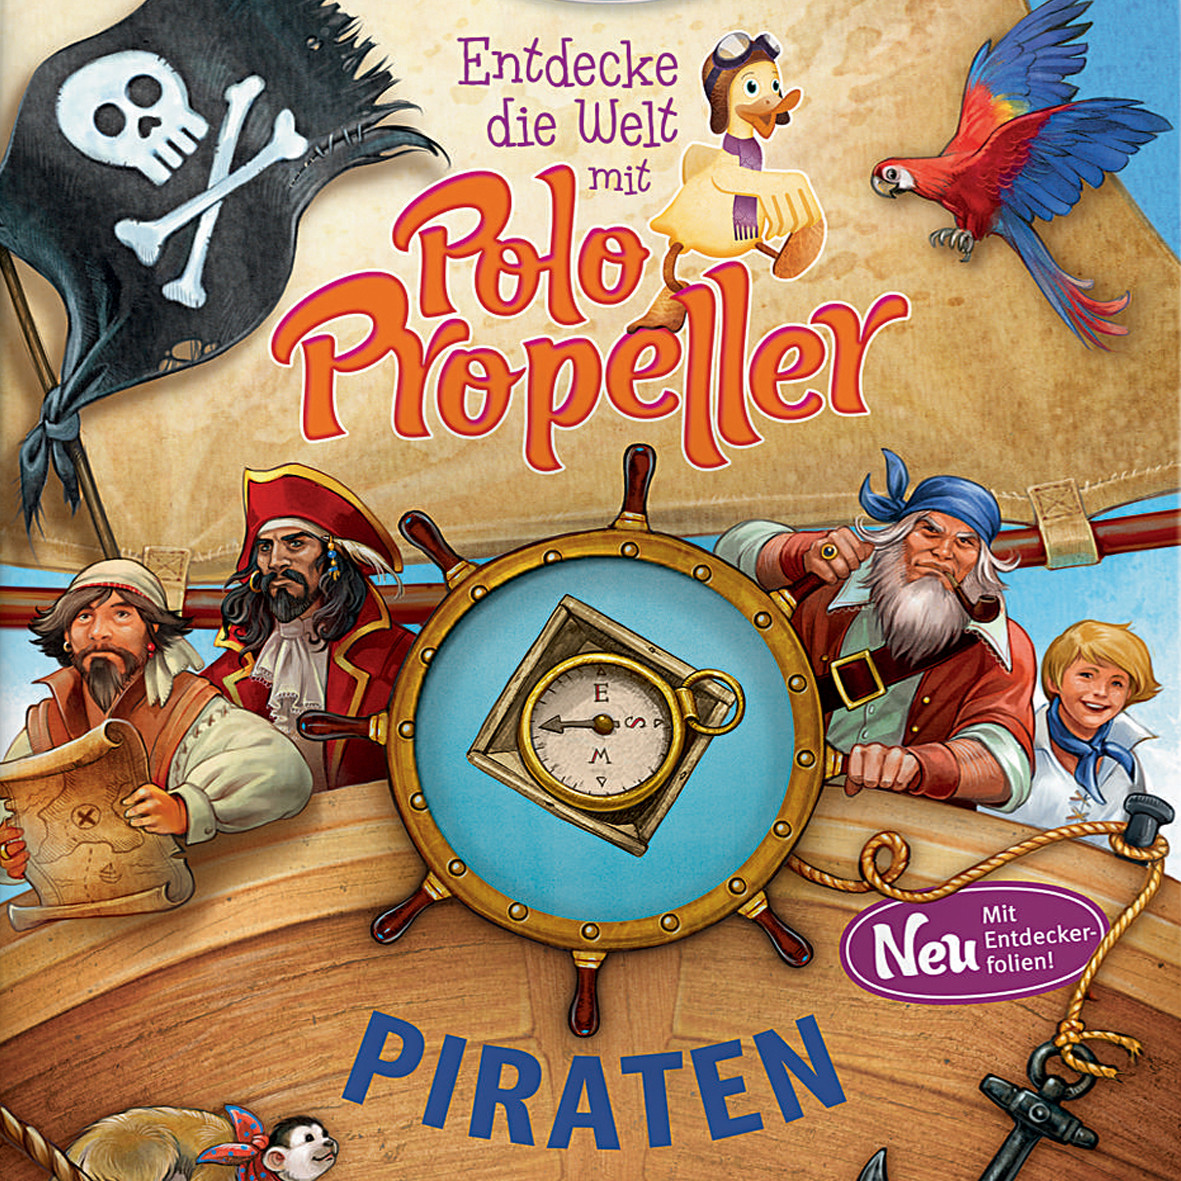 Polo Propeller: Piraten